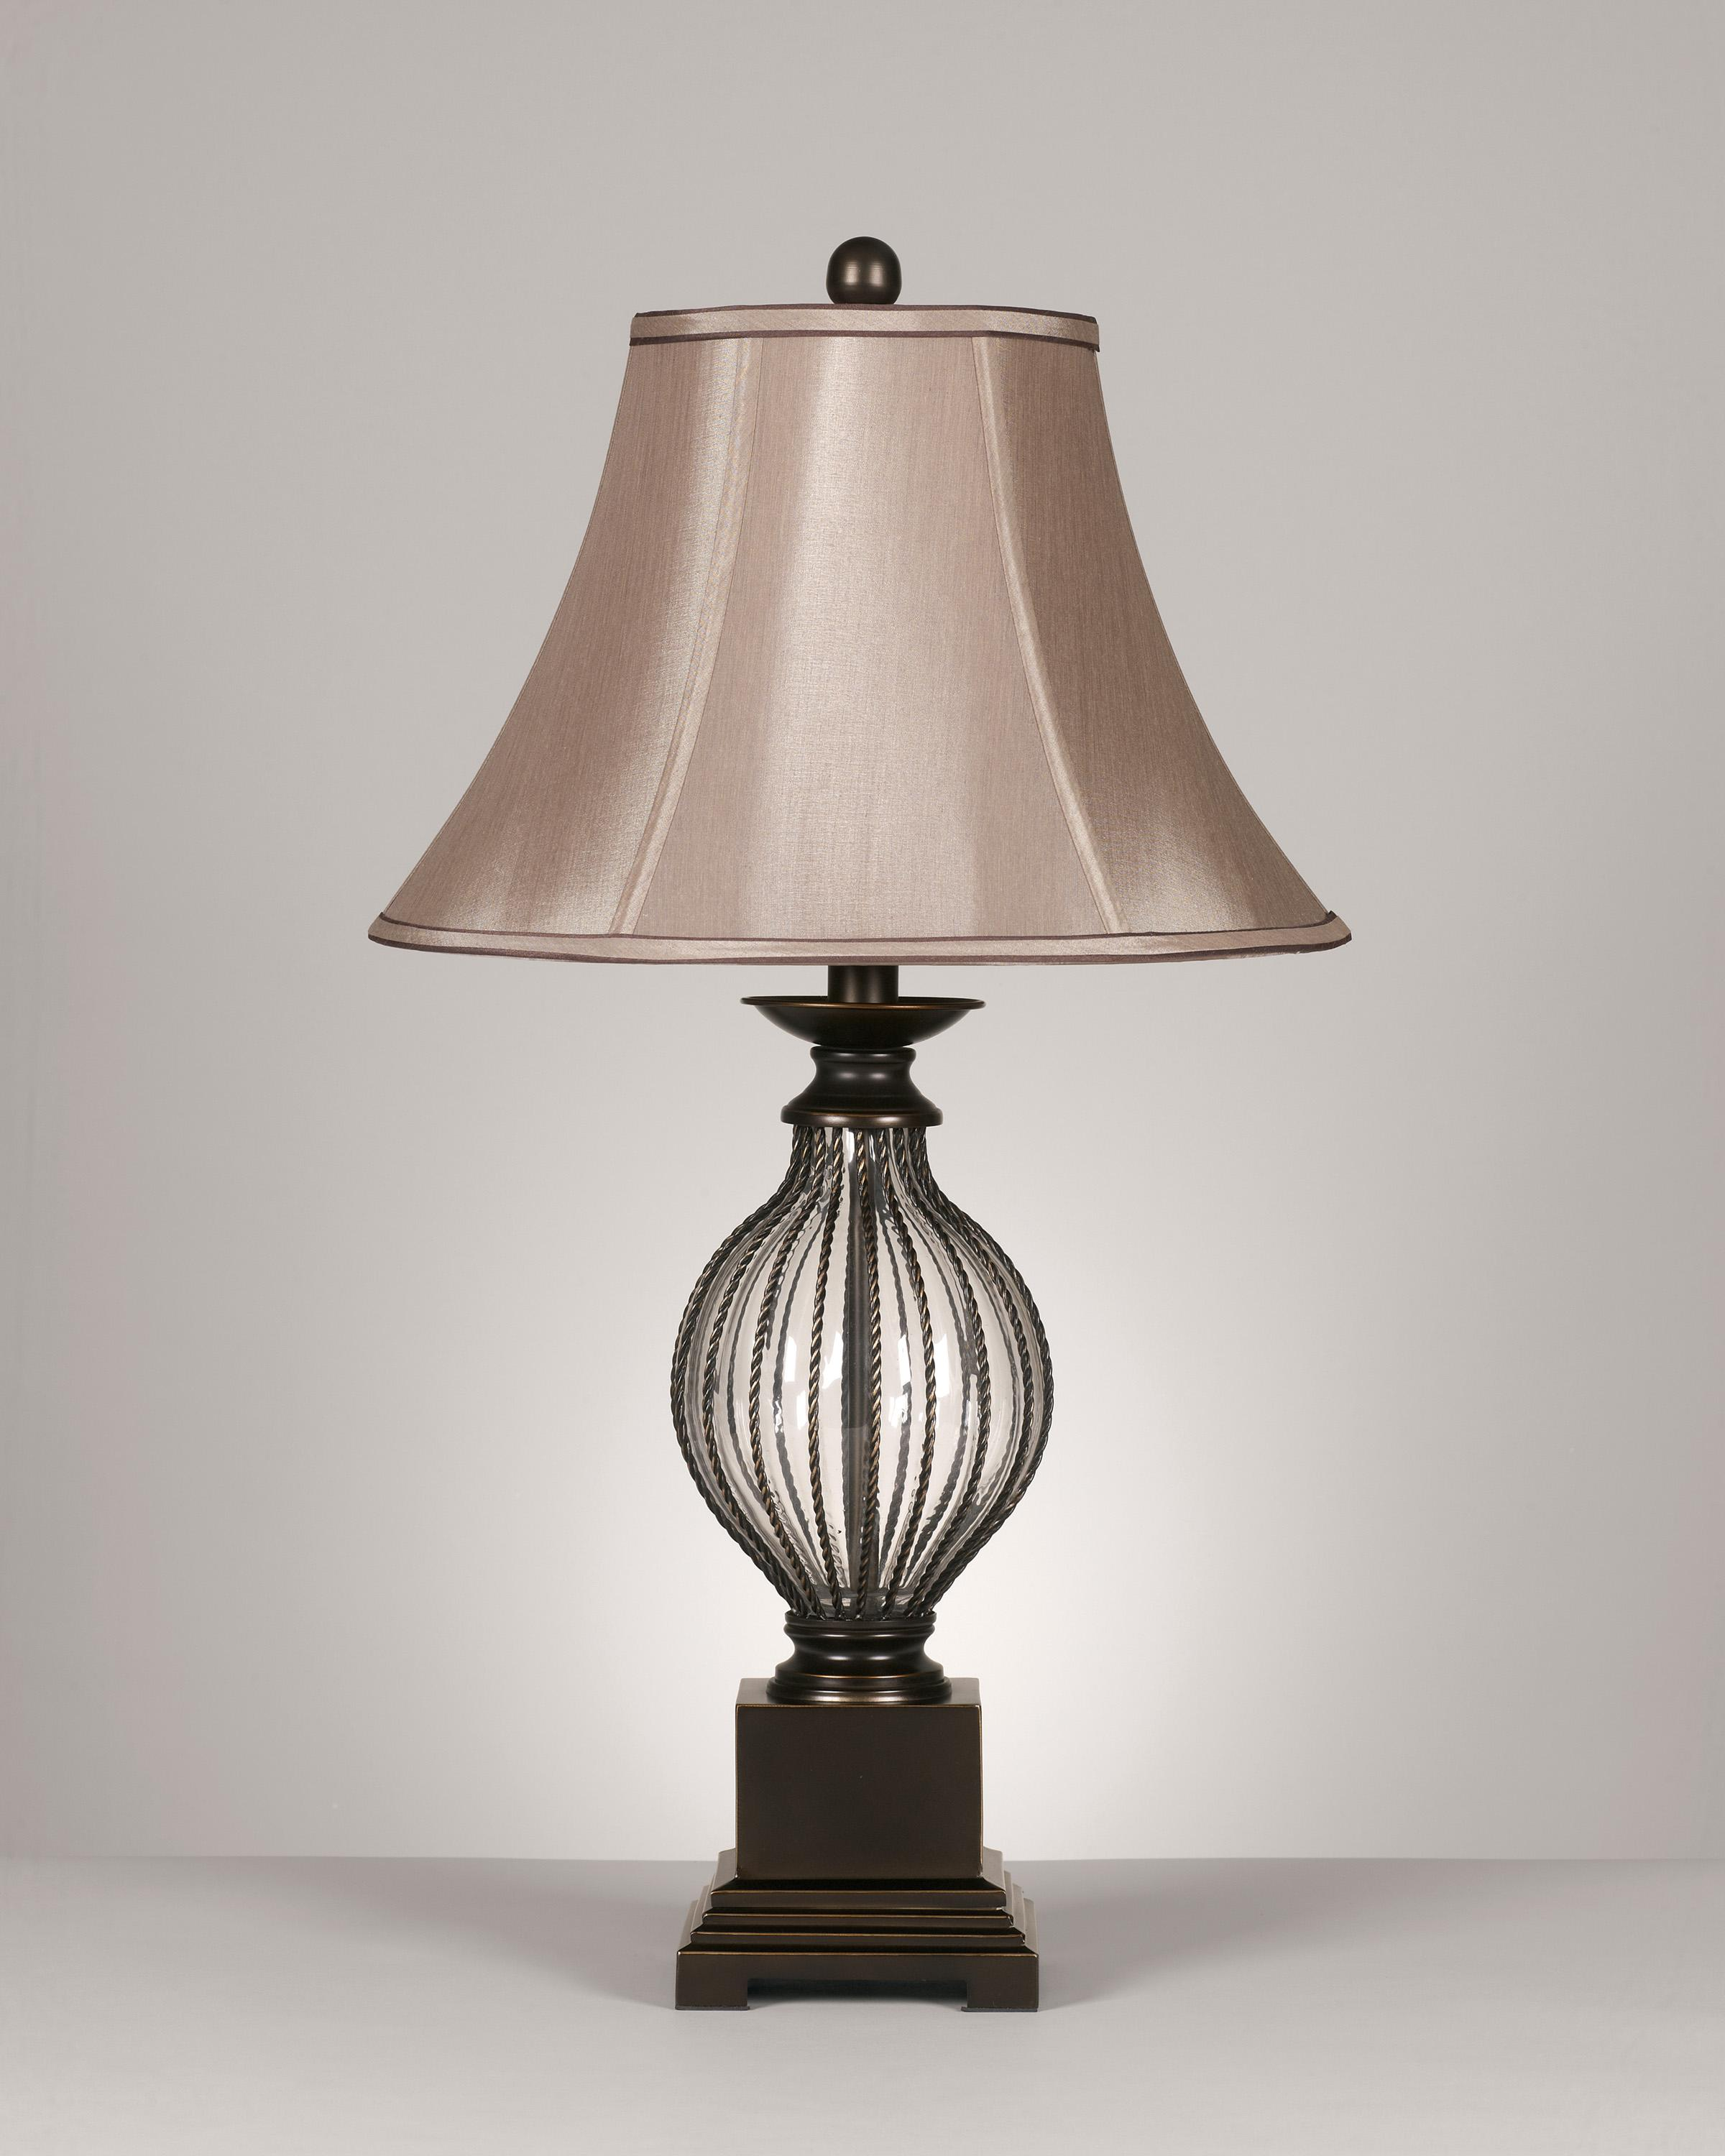 Signature Design by Ashley Lamps - Traditional Classics Set of 2 Ondreya Metal Table Lamps - Item Number: L442234